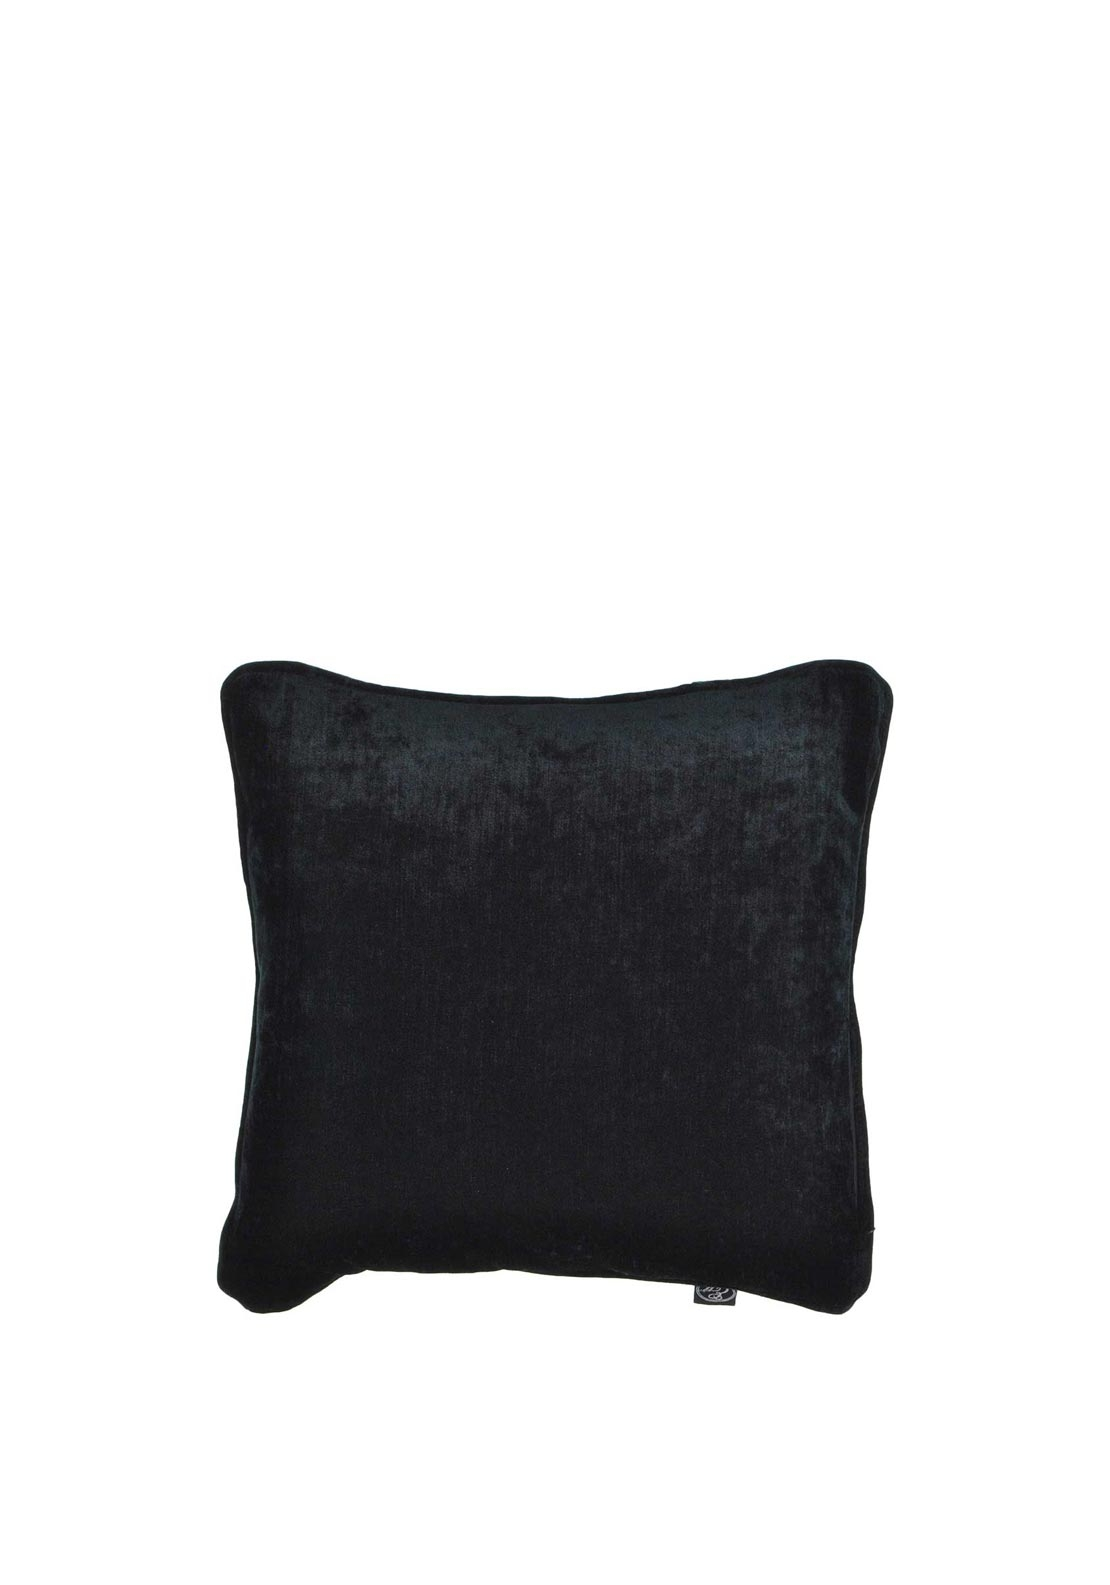 Scatterbox Lambada Filled Cushion, 42 x 42cm Black